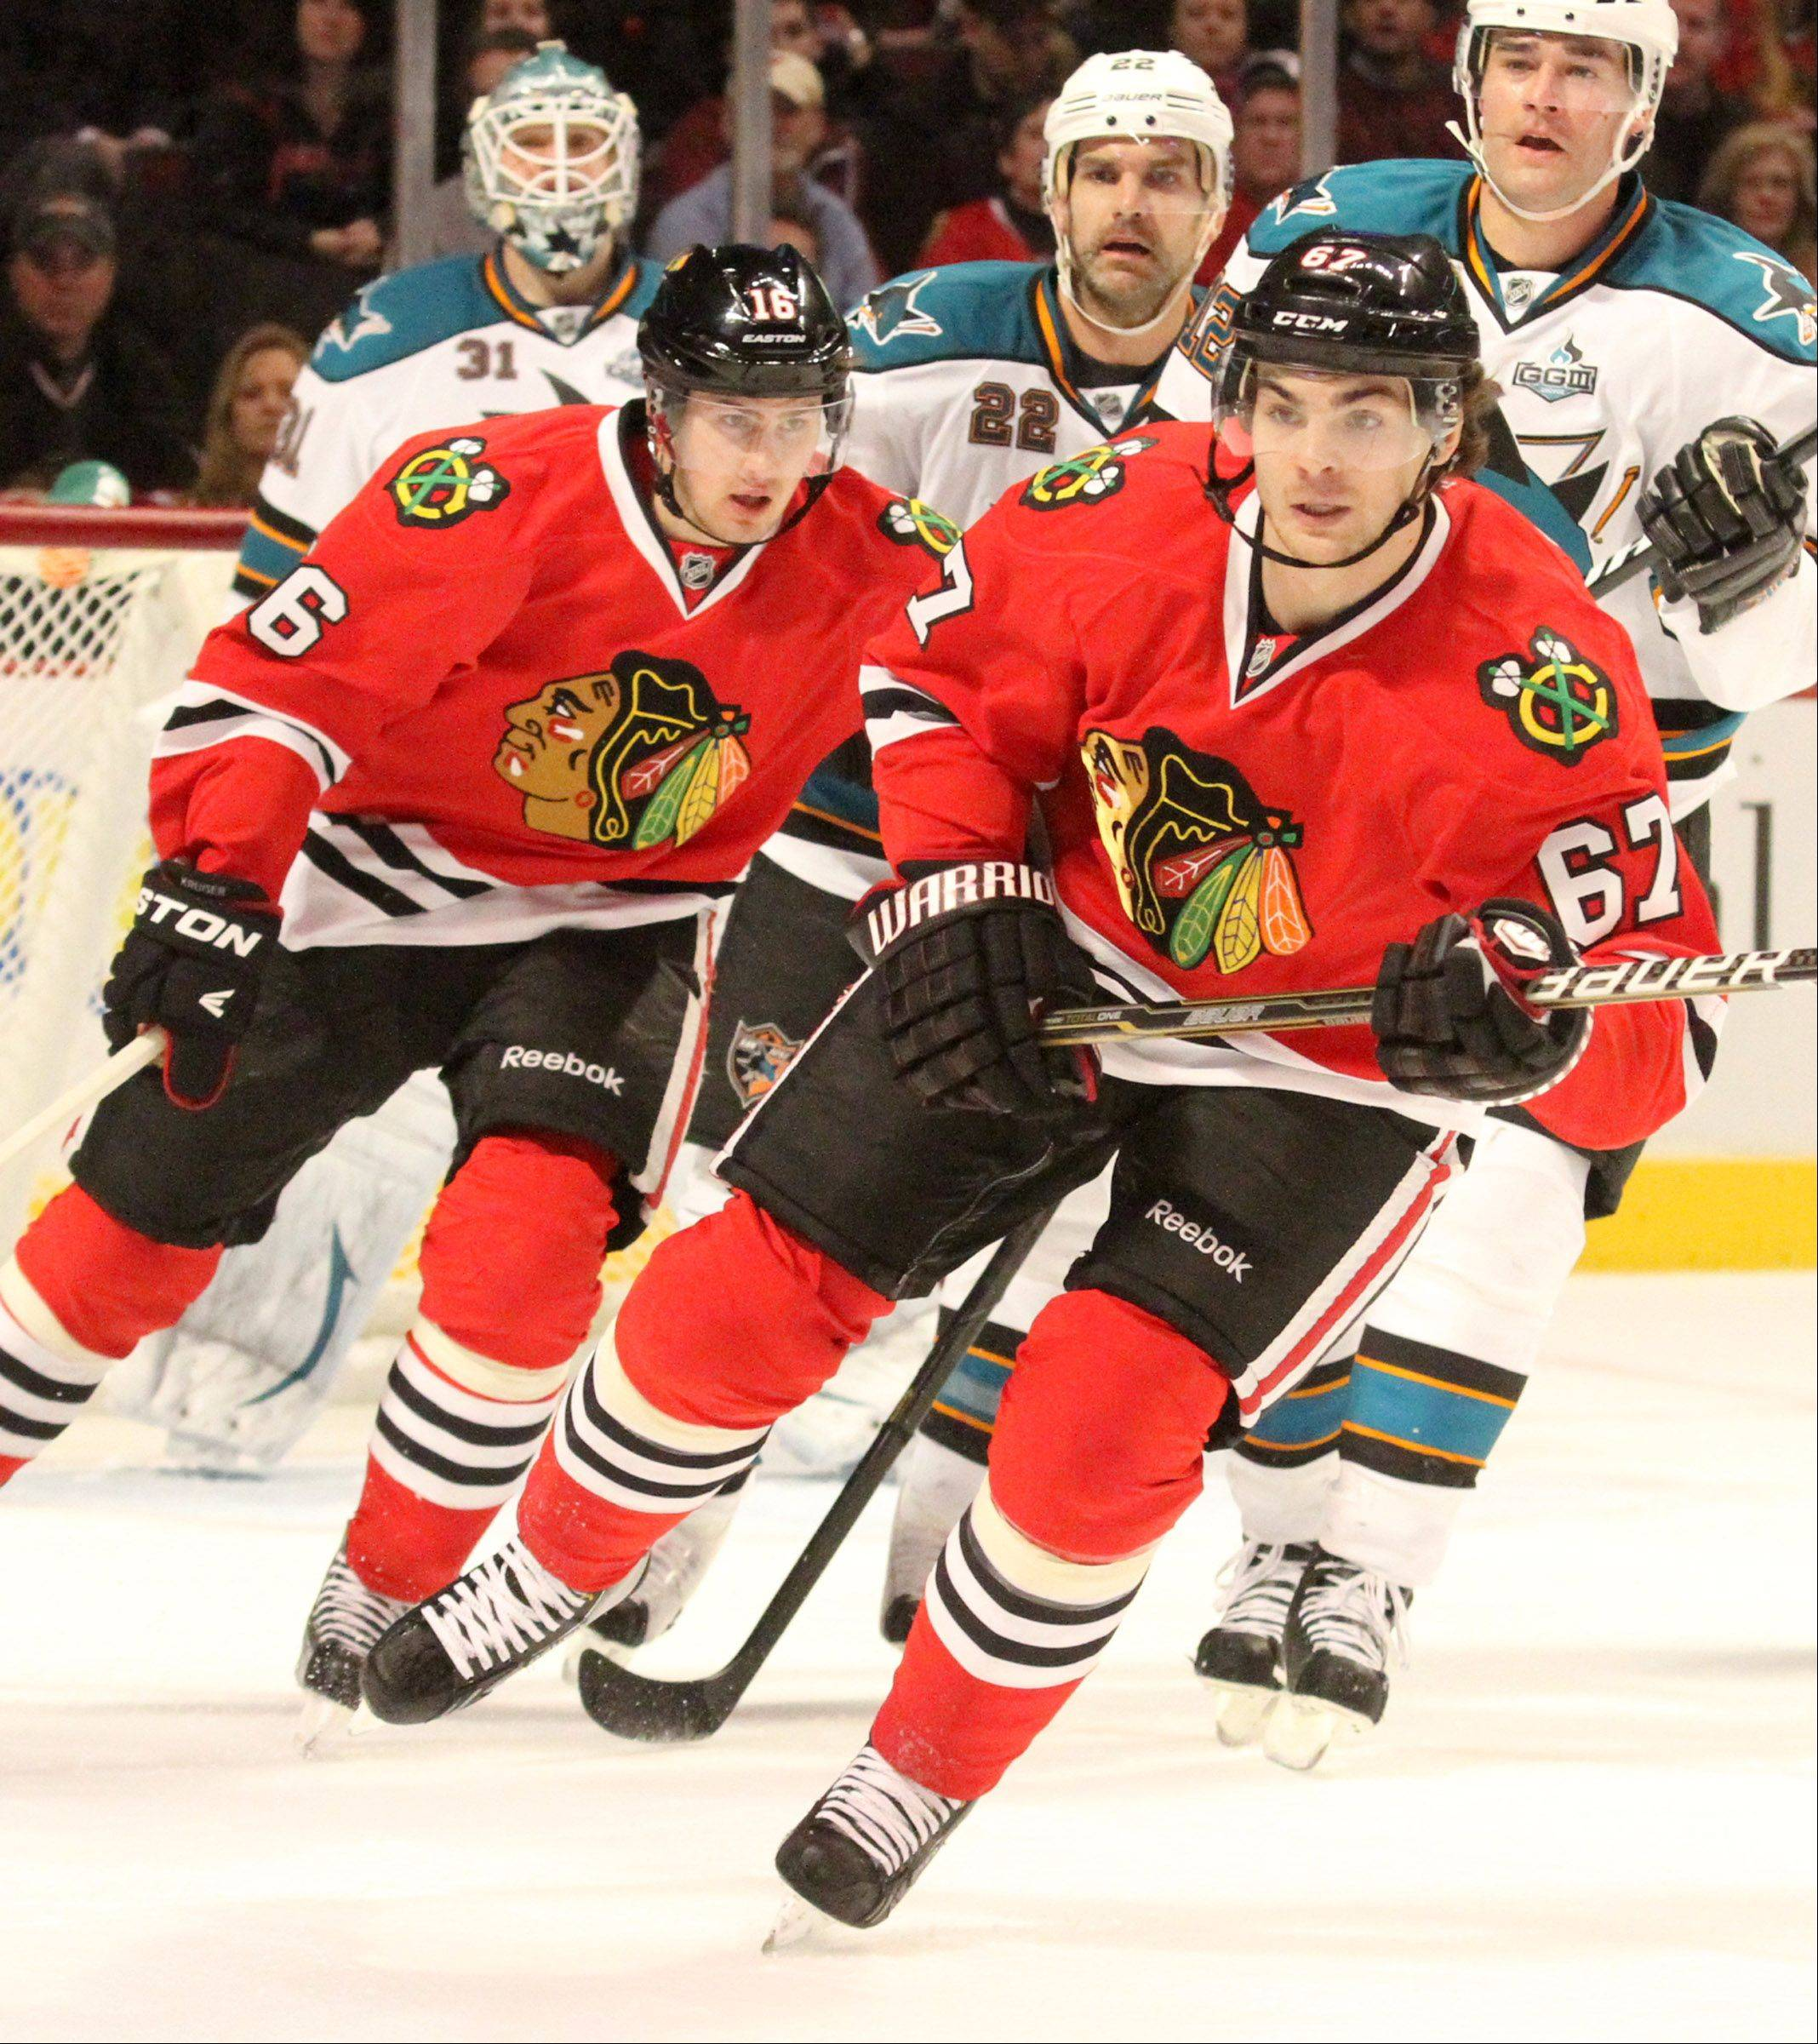 Michael Frolik will be on the top line Monday night, subbing for the injured Marian Hossa, when the Blackhawks host the Kings.